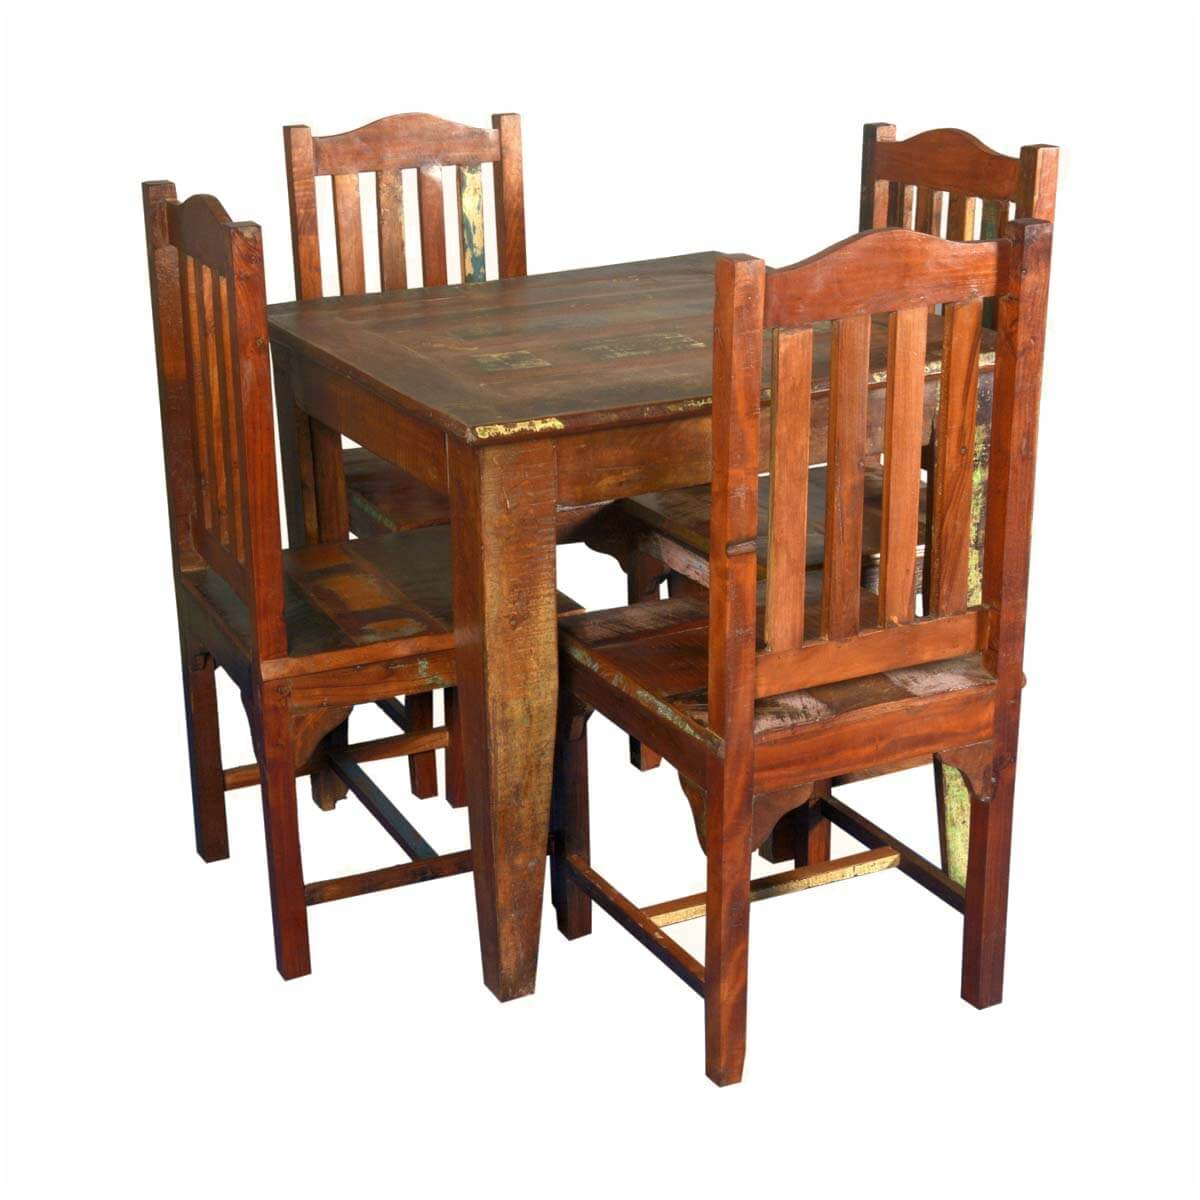 Small reclaimed wood 5pc dining table and chairs for Small wood dining table and chairs